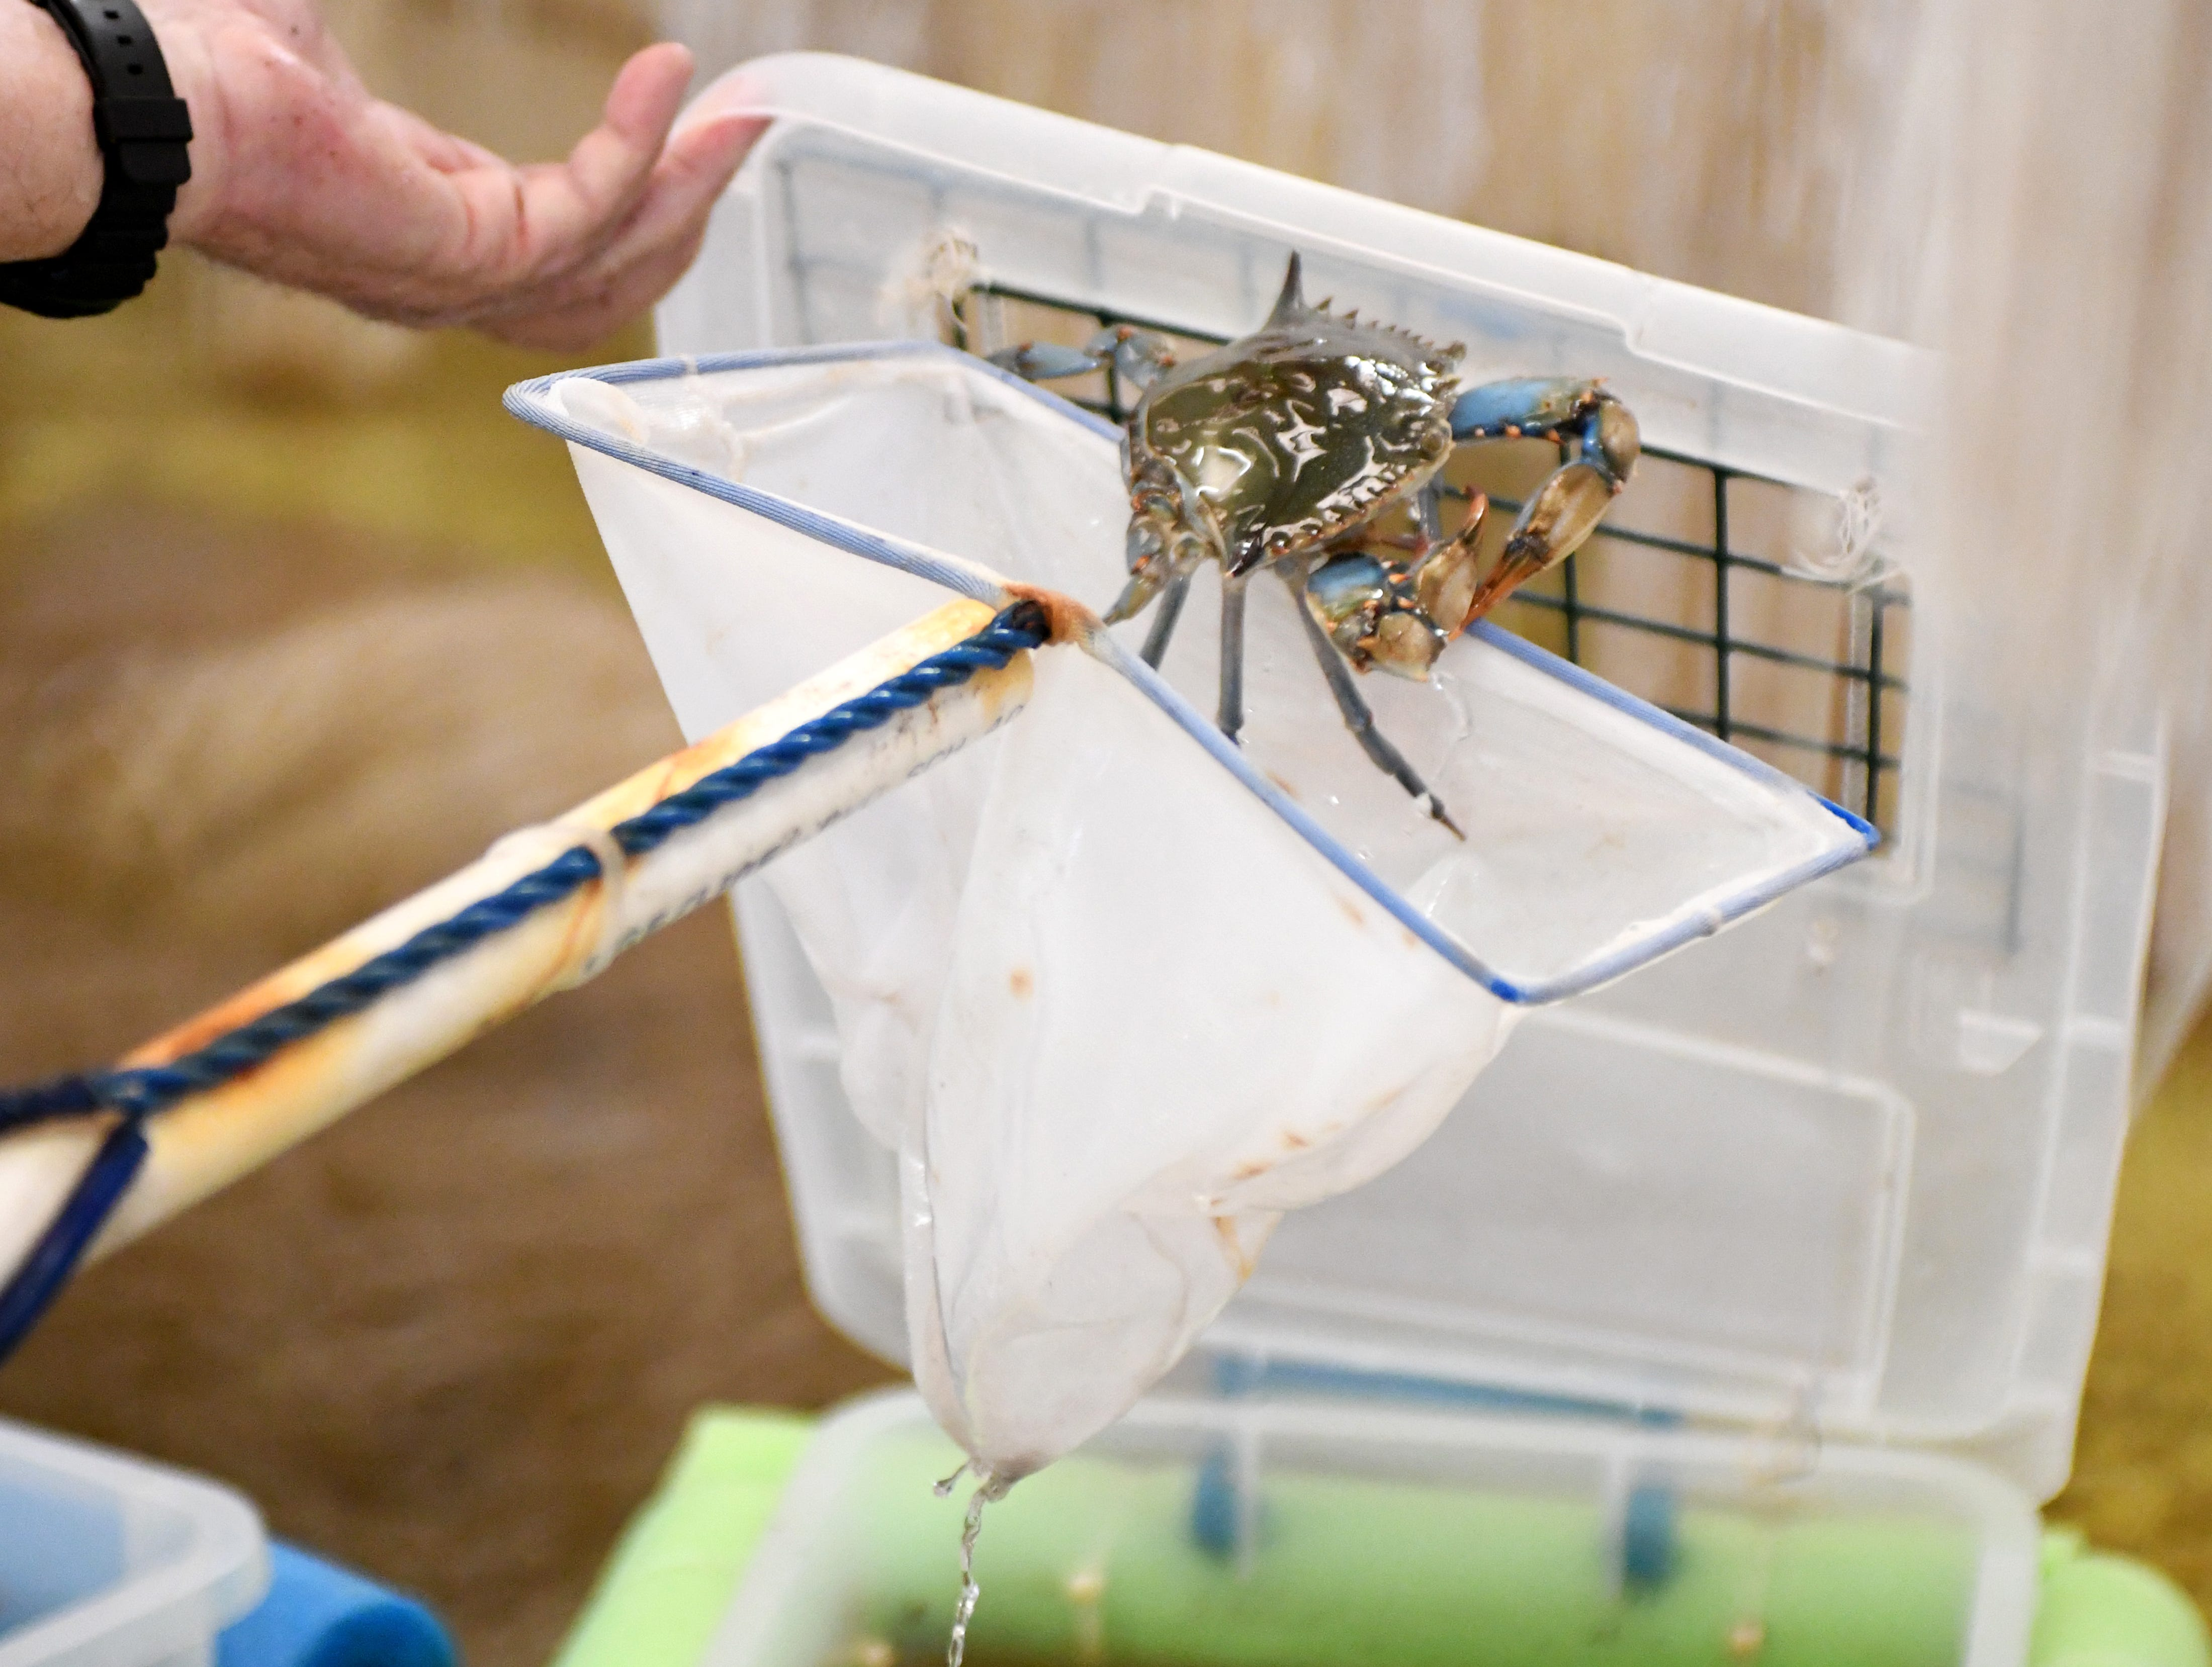 Scientists at the University of Southern Mississippi's blue crab hatchery in Ocean Springs are doing research to make it easier for fishermen to farm blue crabs.